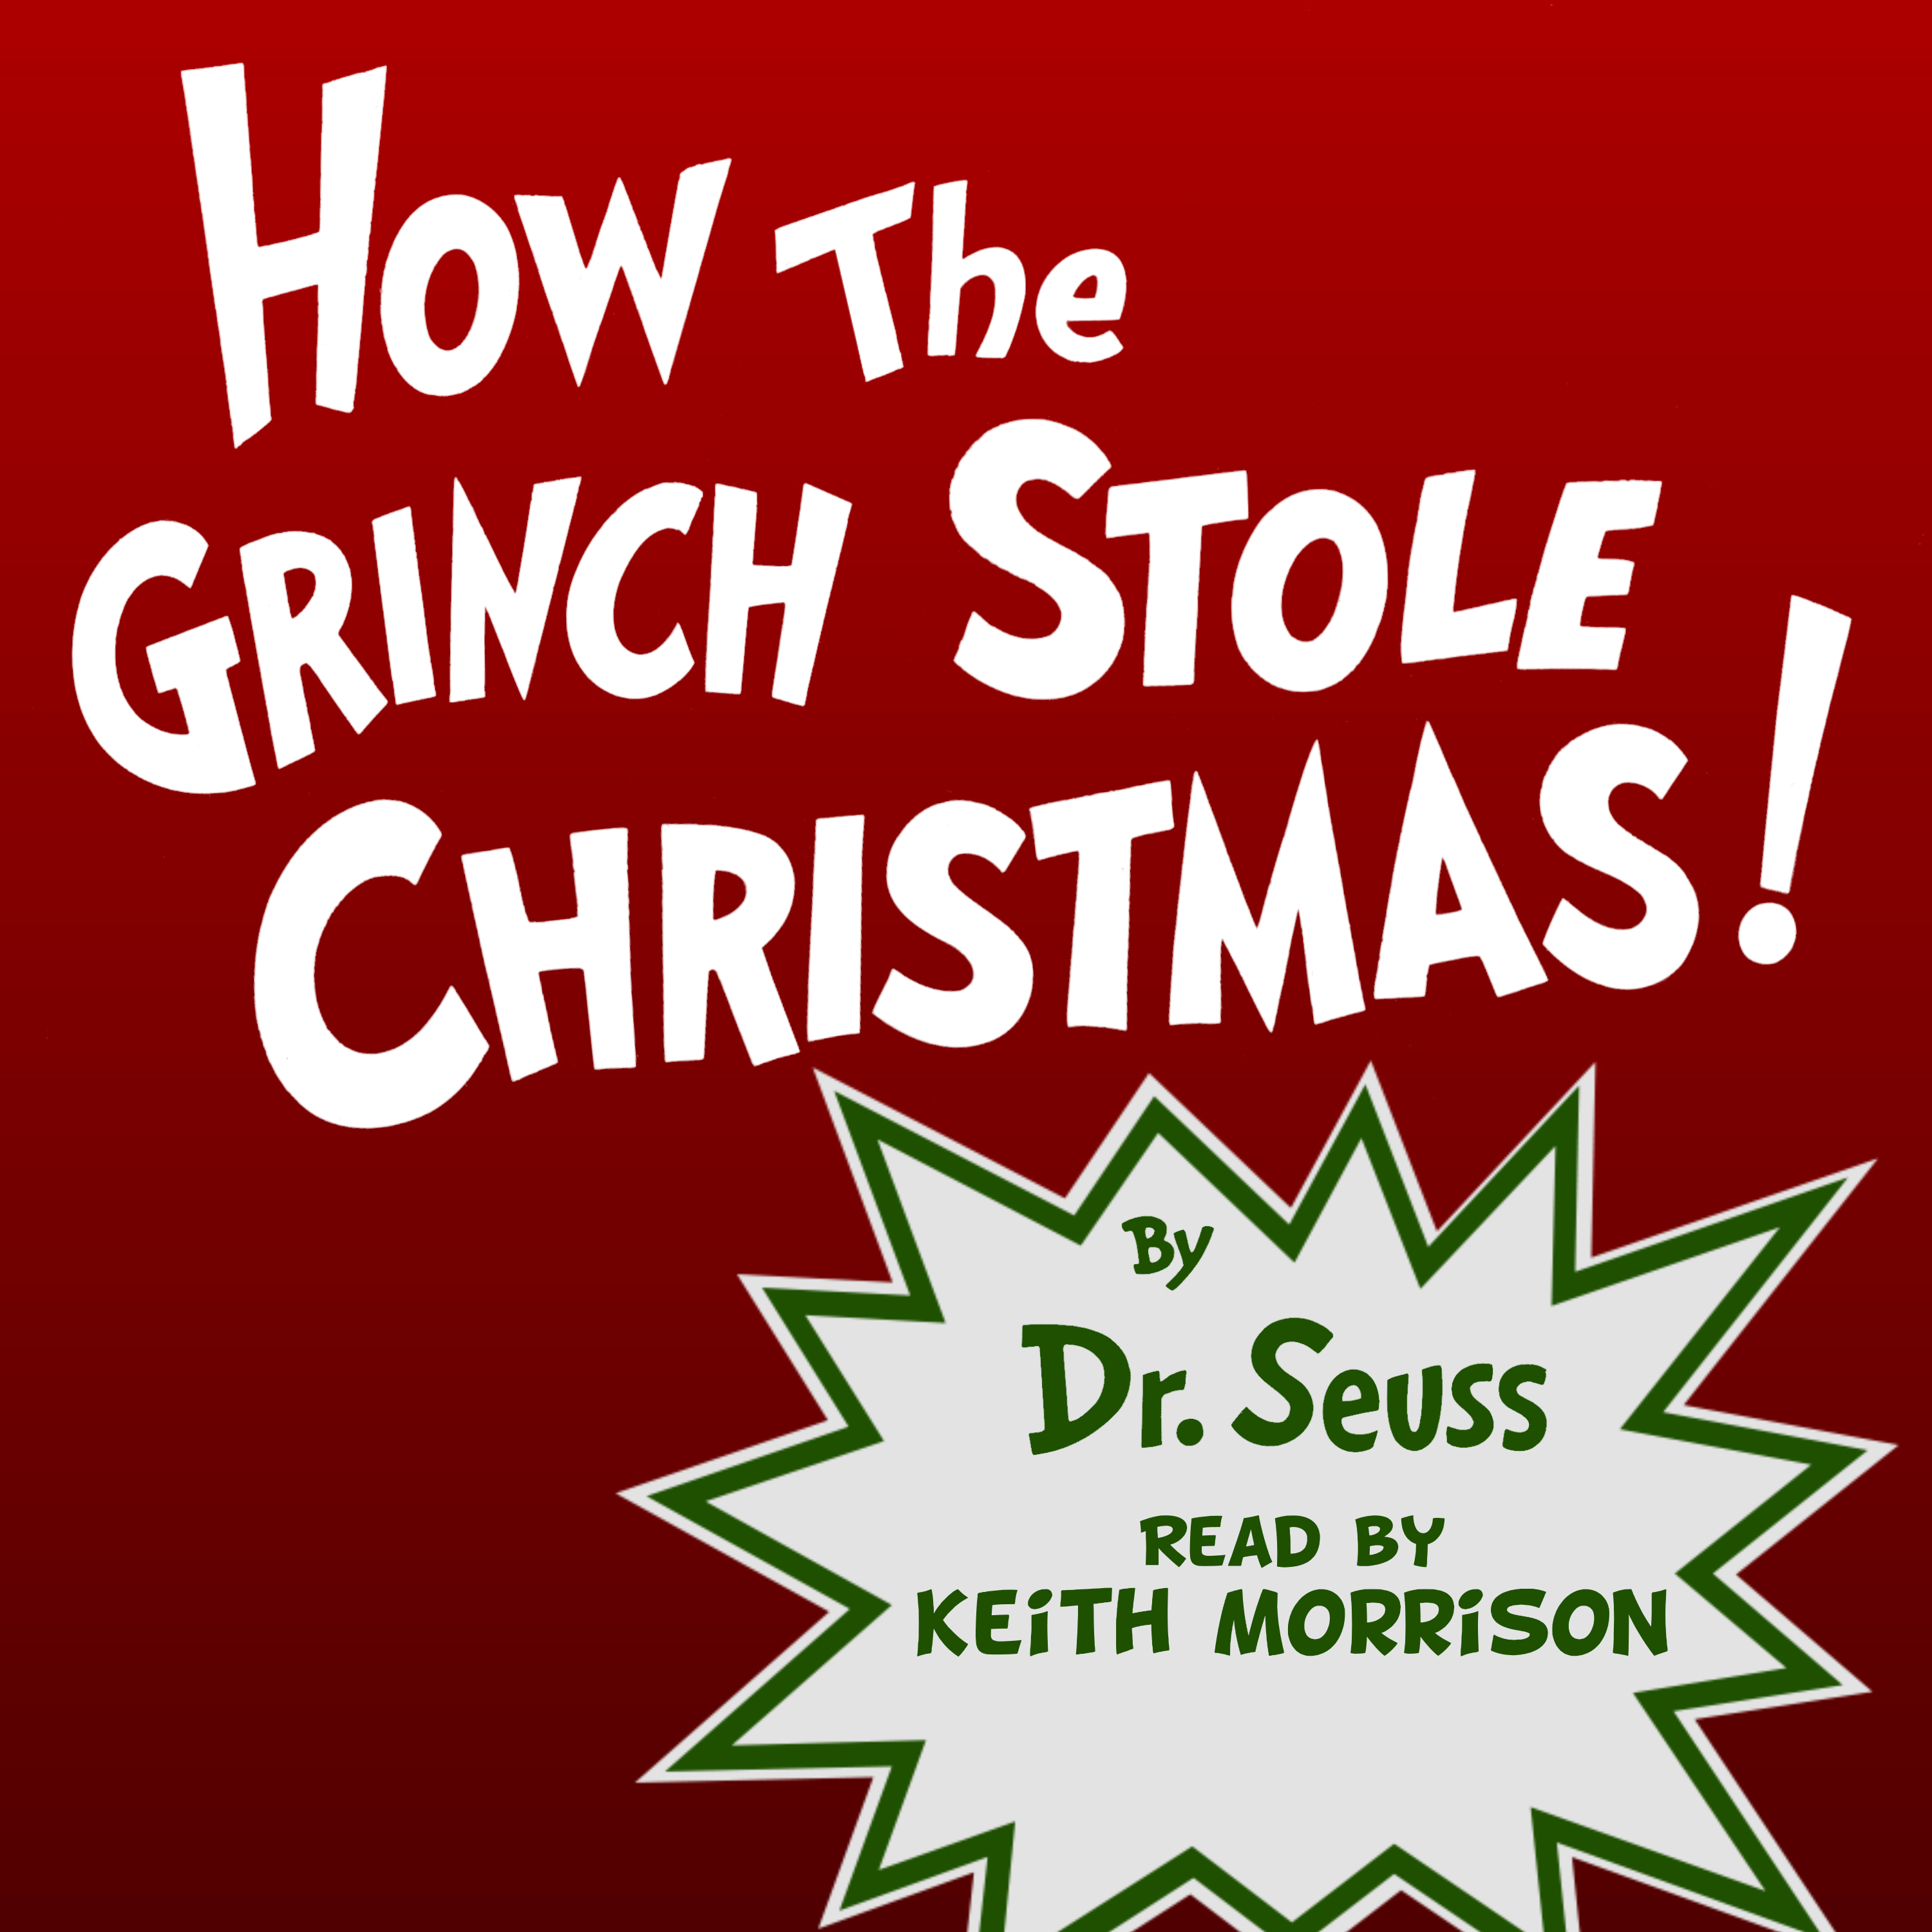 """Dr. Seuss' """"How The Grinch Stole Christmas!"""" read by Keith Morrison"""